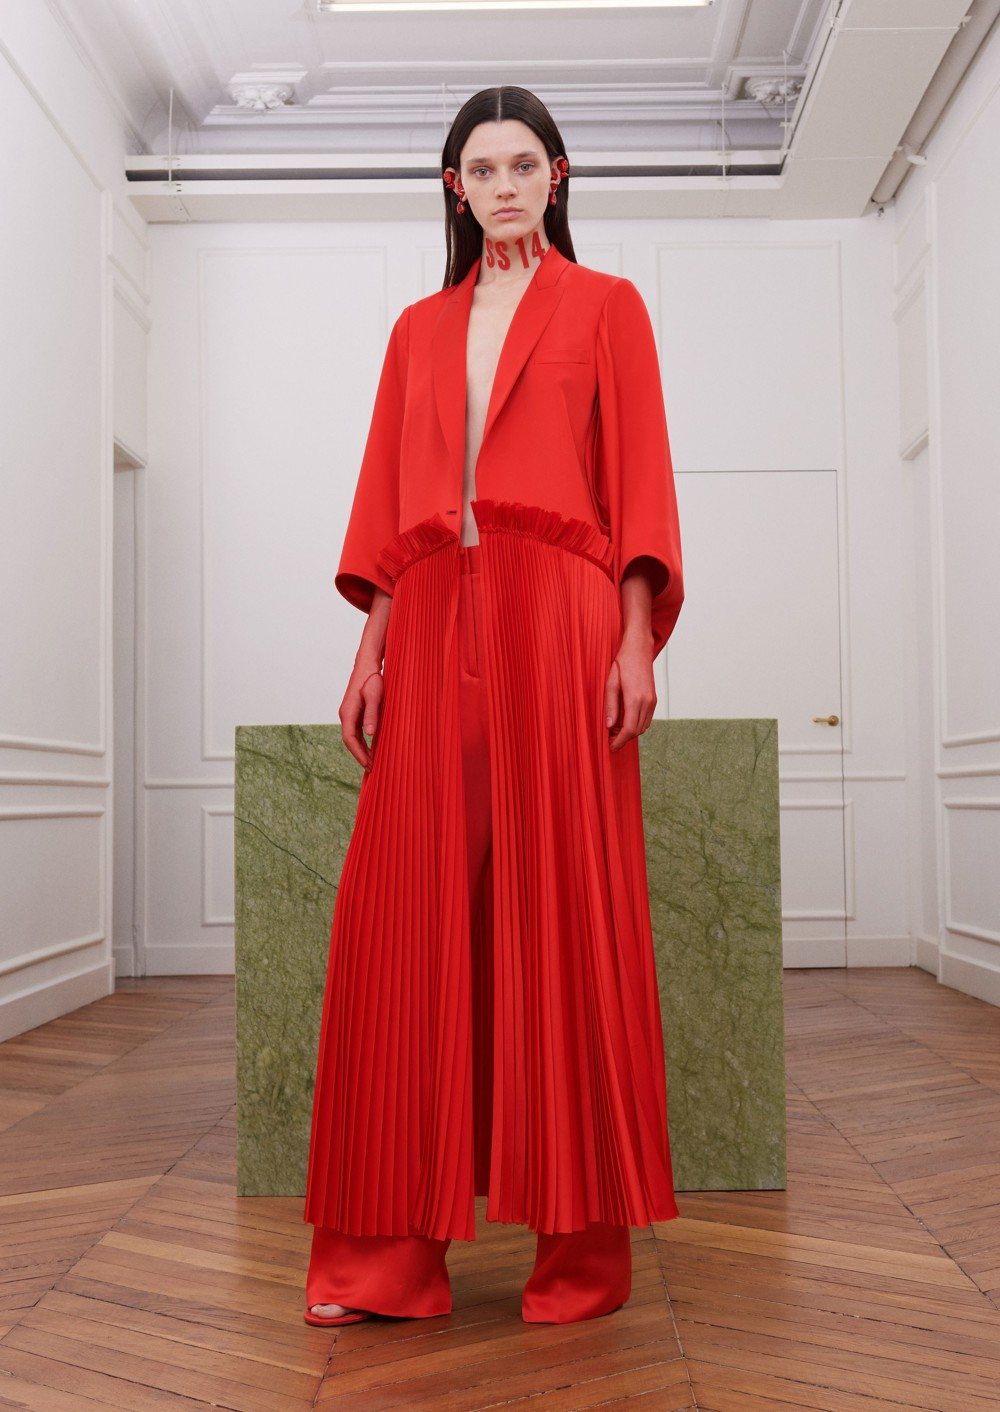 21-givenchy-rtw-fall-2017